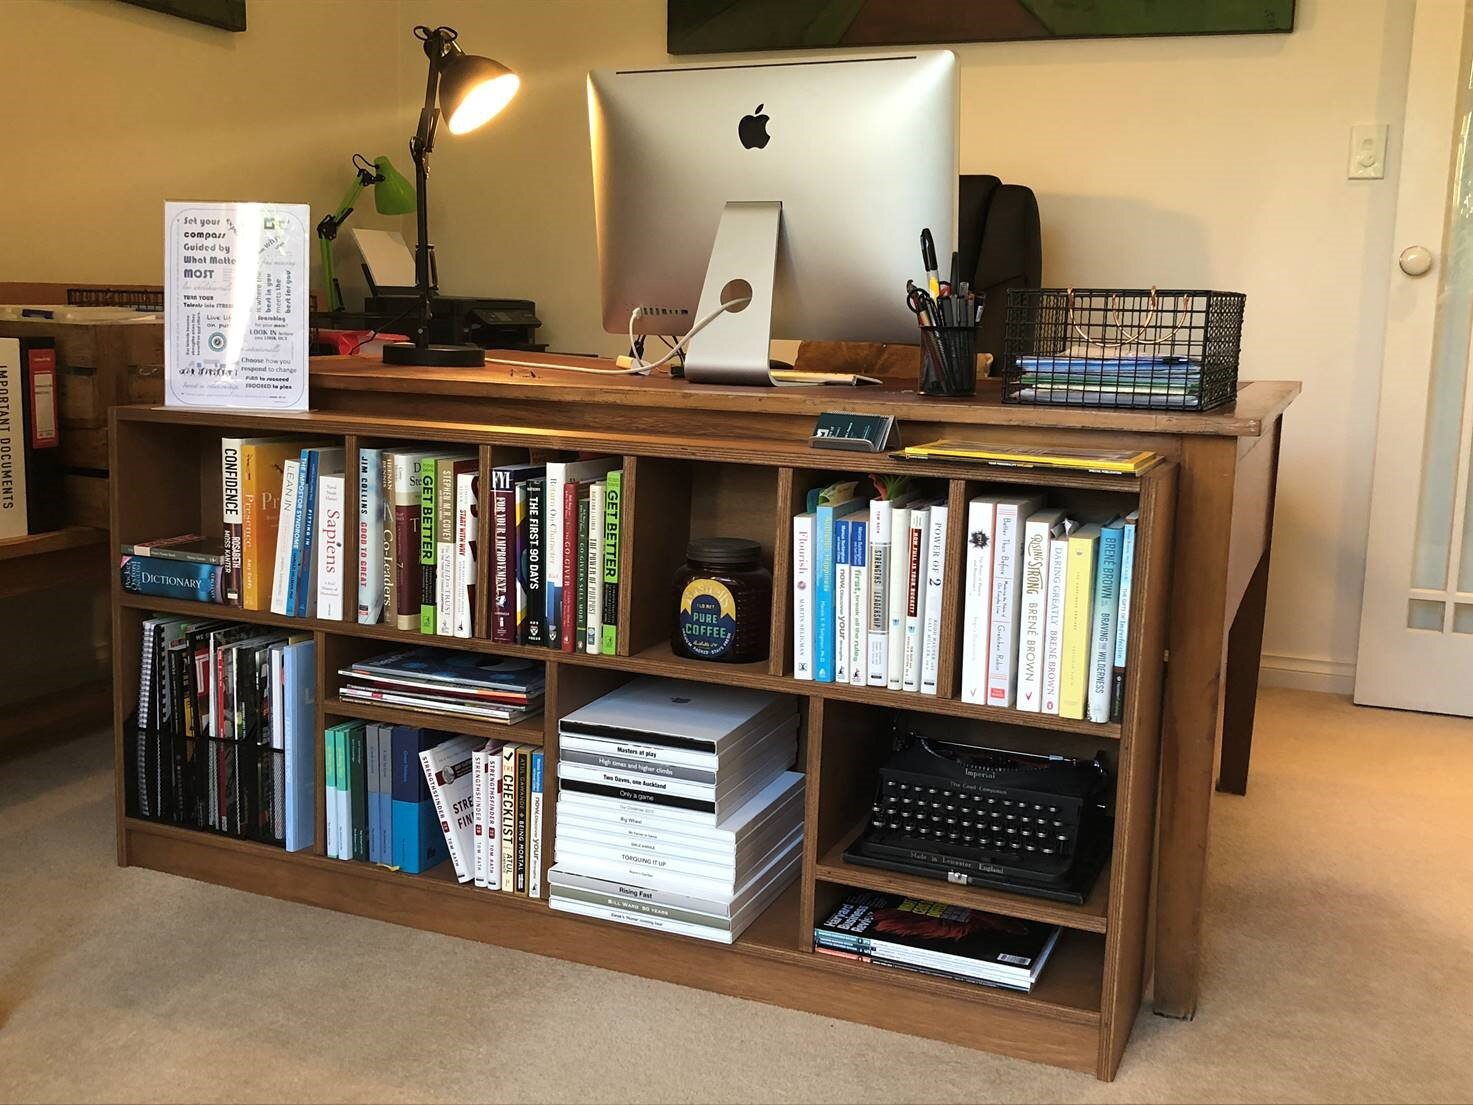 David Pearce bookshelf